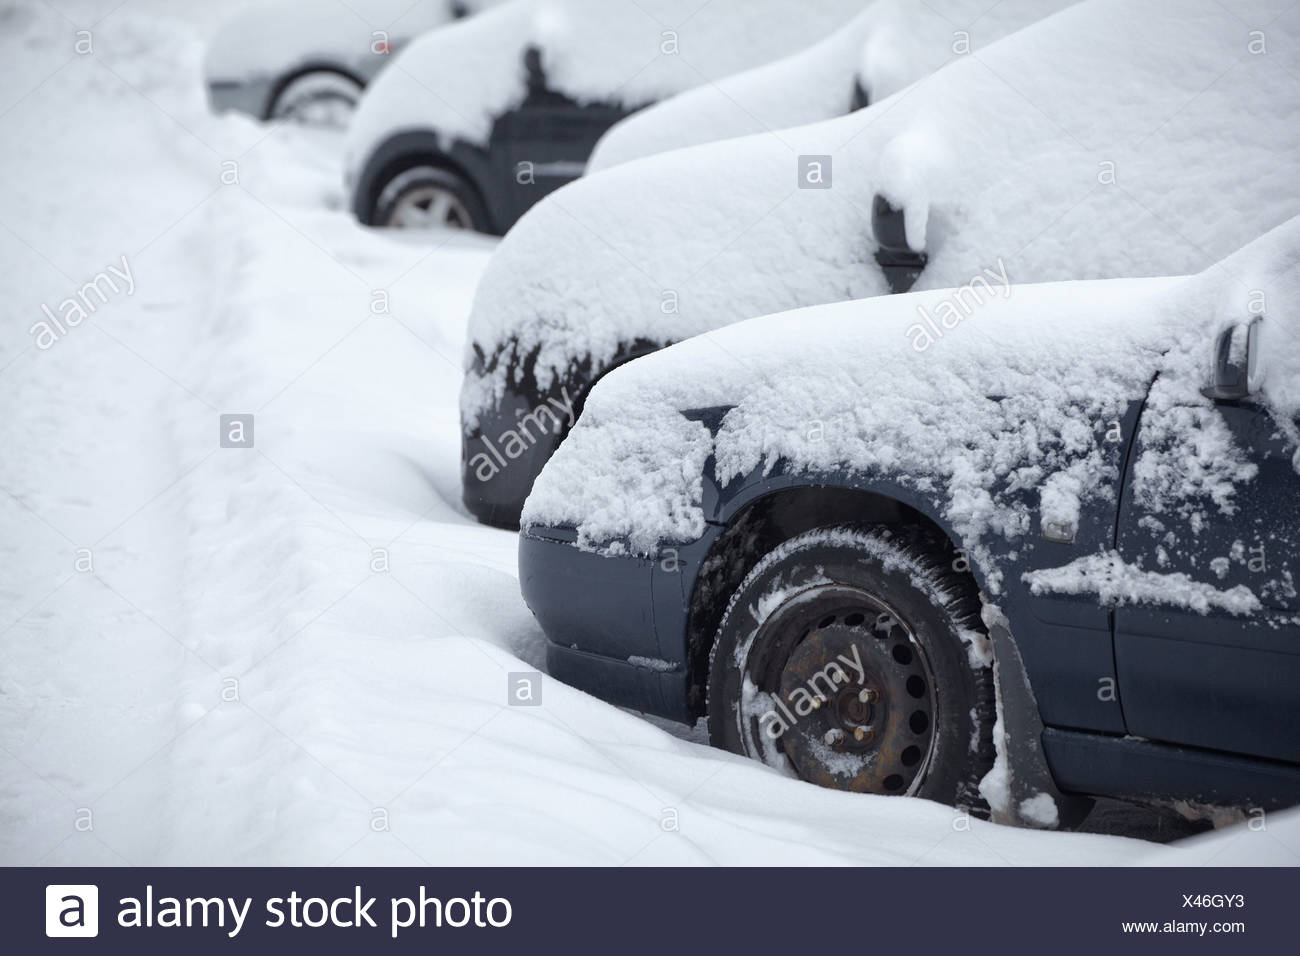 6dbaa659af Cars Covered In Snow Stock Photos   Cars Covered In Snow Stock ...